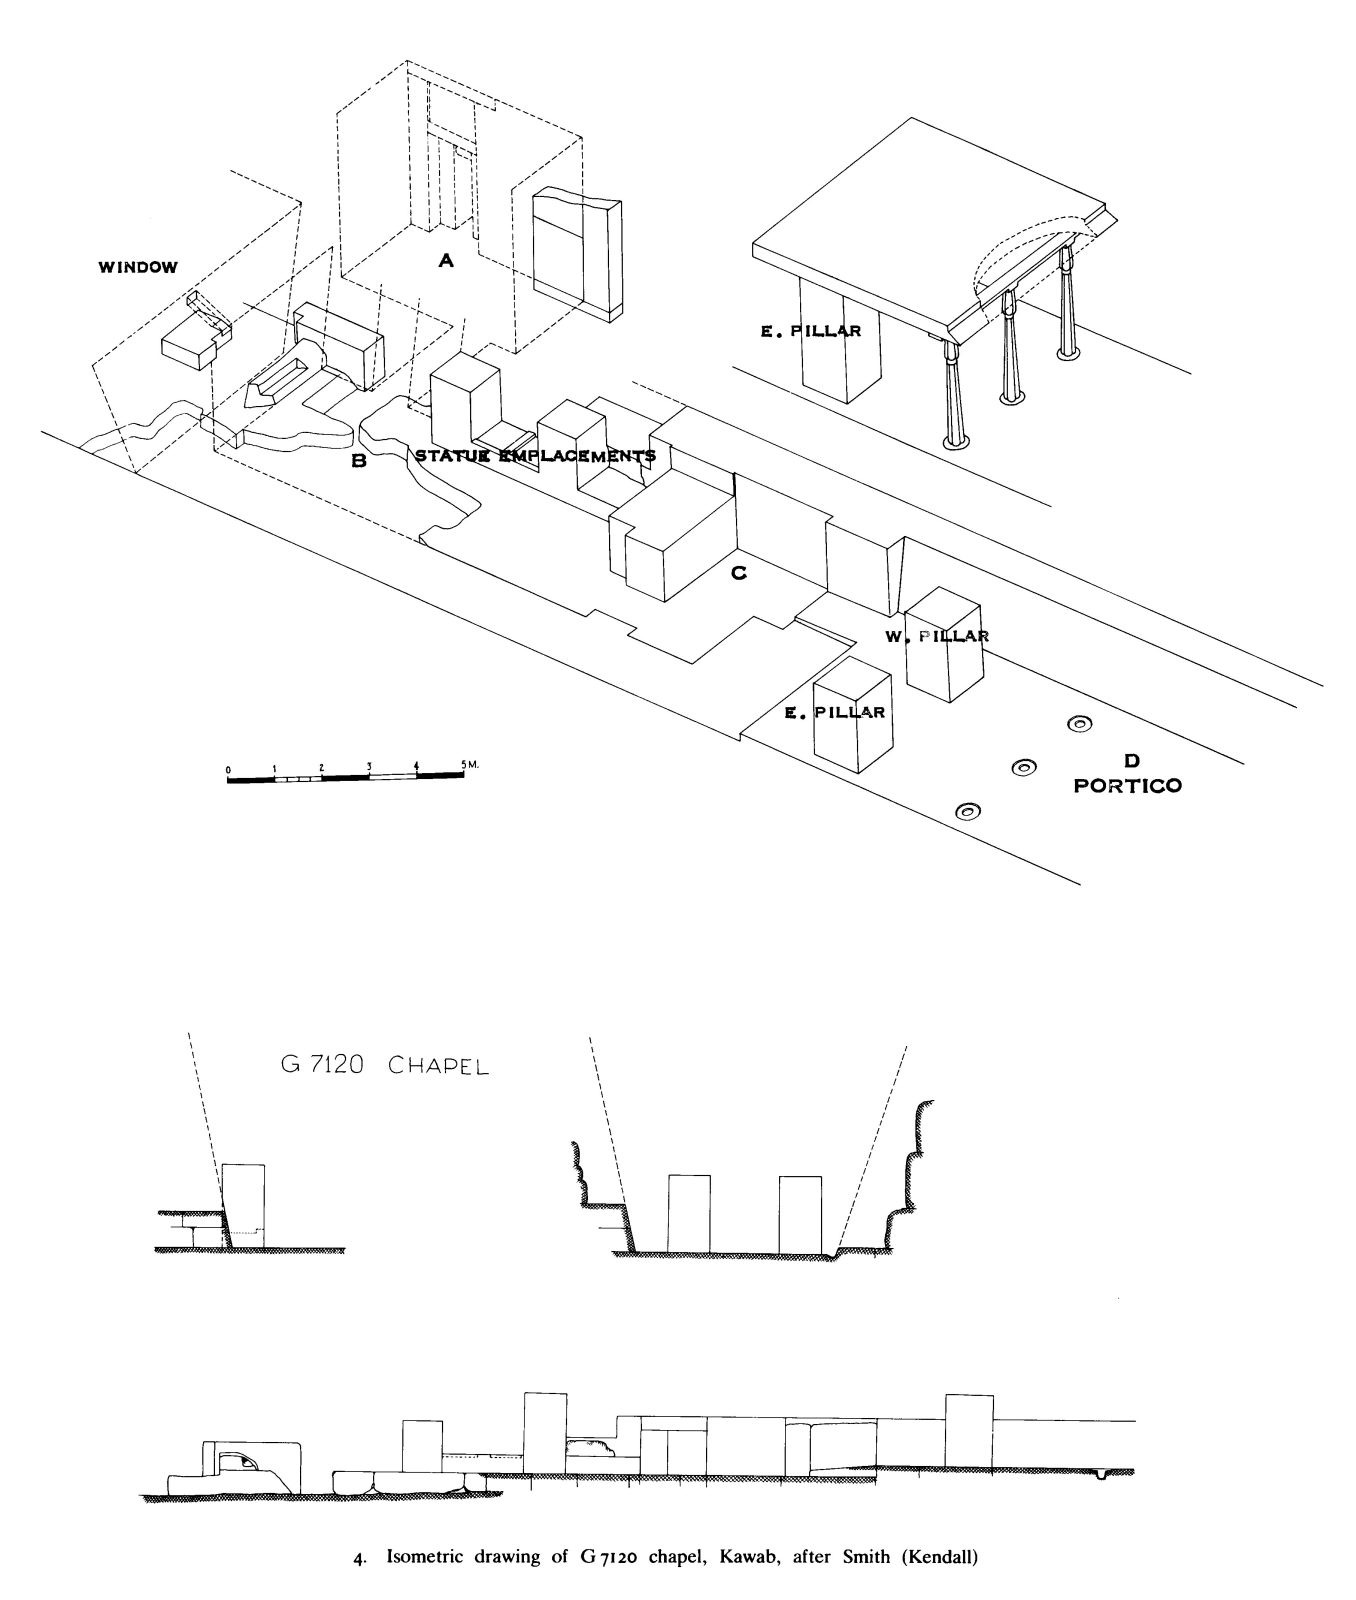 Maps and plans: Isometric plan of G 7120, chapel